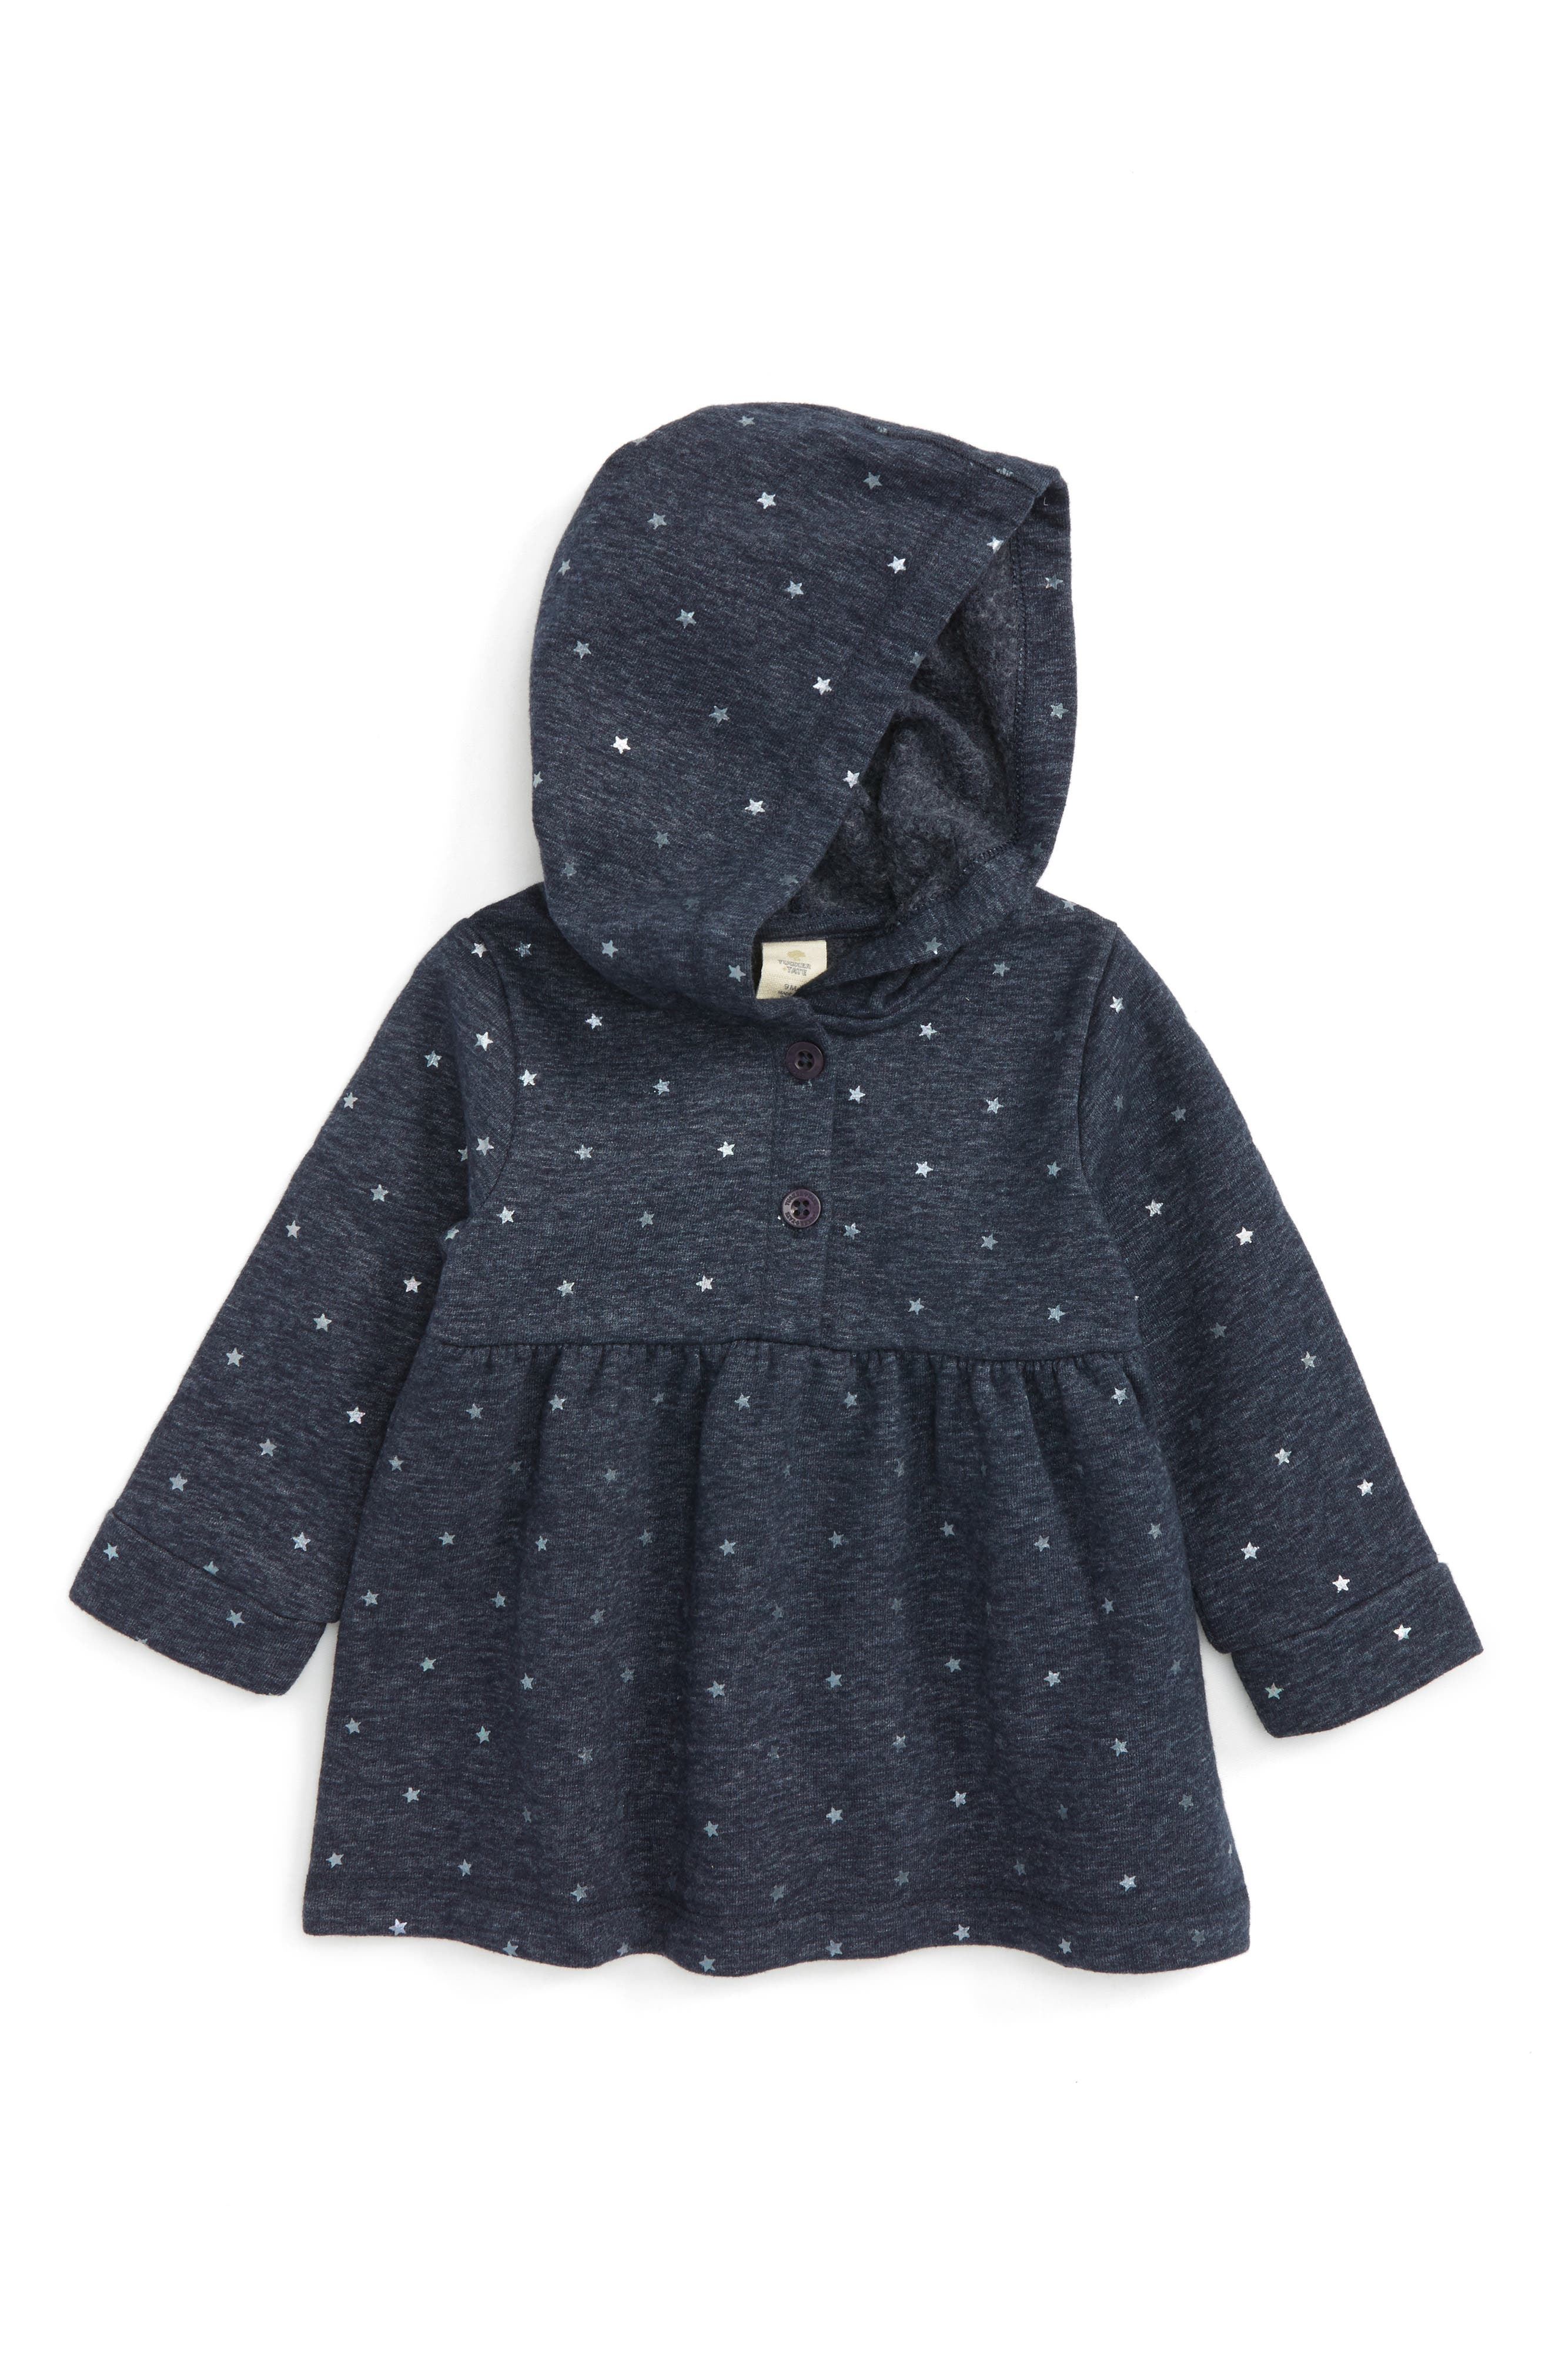 Foil Star Hoodie,                         Main,                         color, Navy Peacoat Star